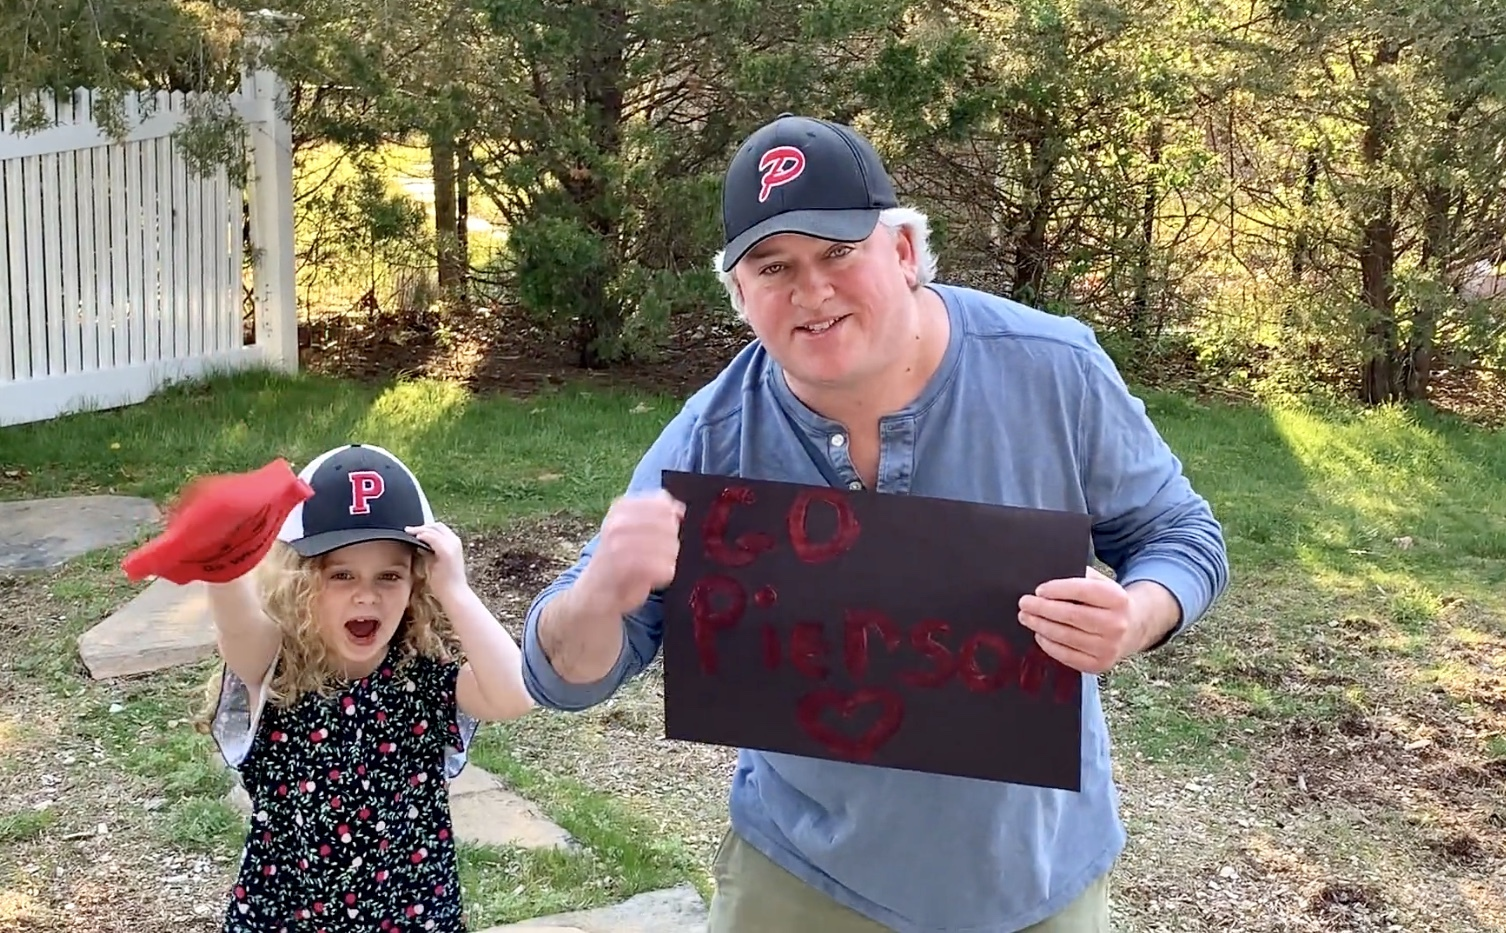 Michael Guinan, Pierson High School assistant principal, got a little help from his daughter to tell students how much they are missed.